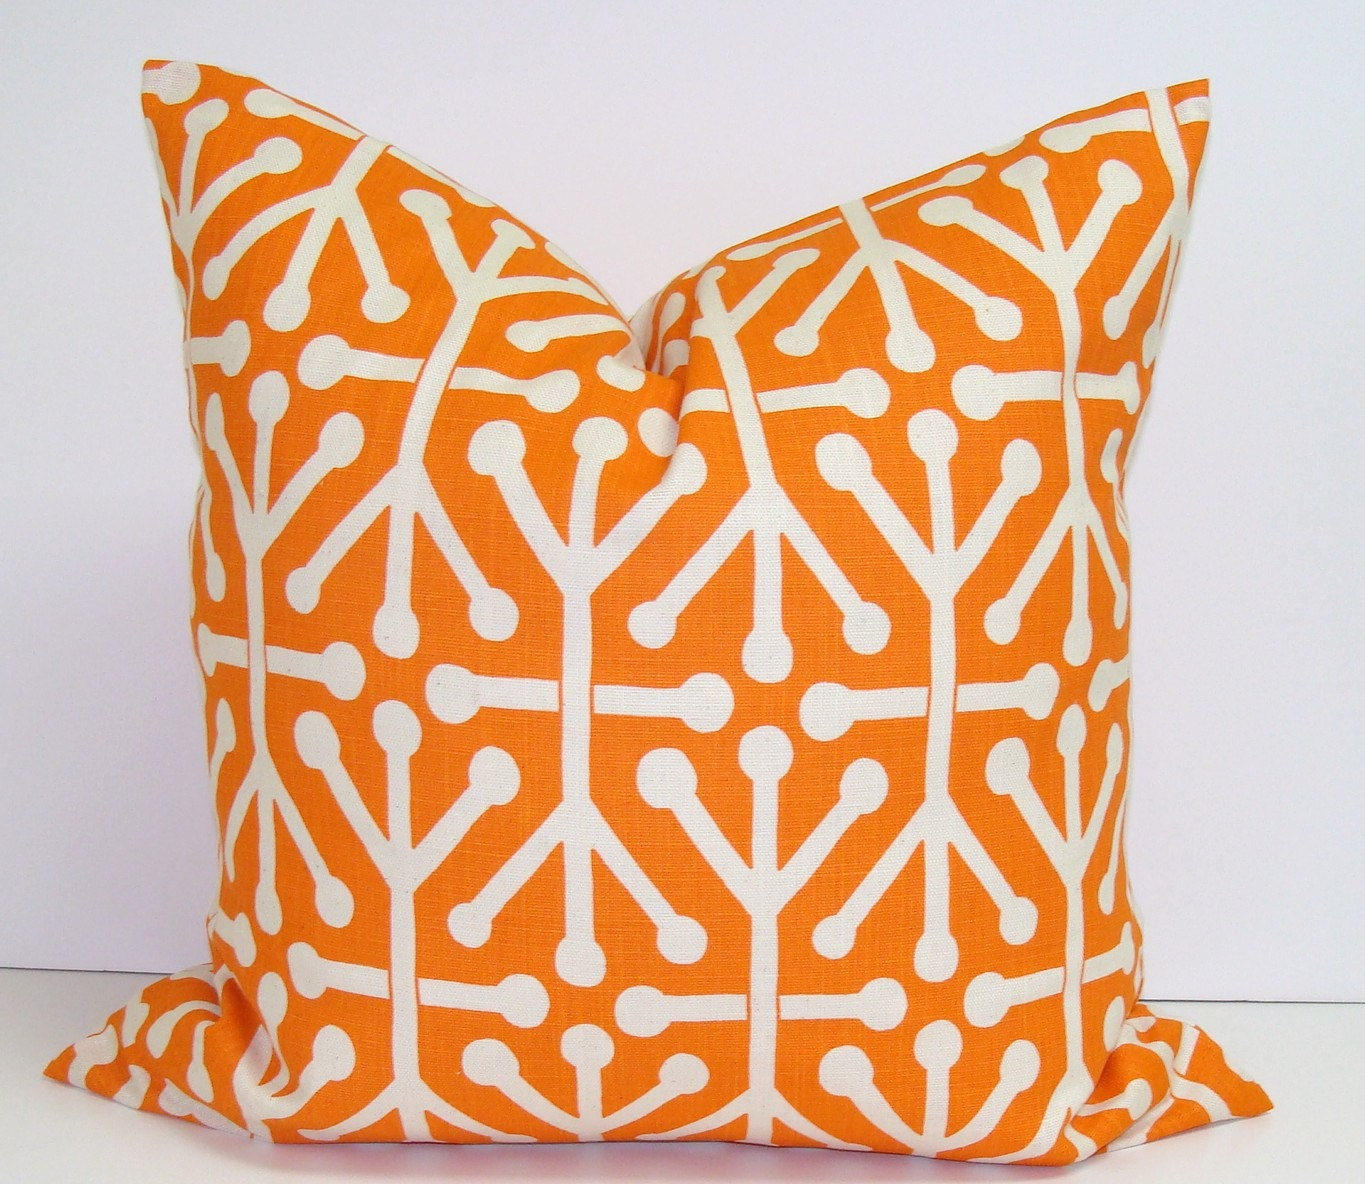 ORANGE PILLOW.27x27 inch.Decorator Pillow Cover.Housewares.Home Decor.Dominos.Geometric.Home Decor.Jacks.Cushion.Orange Cushion.Cm.Home - ElemenOPillows